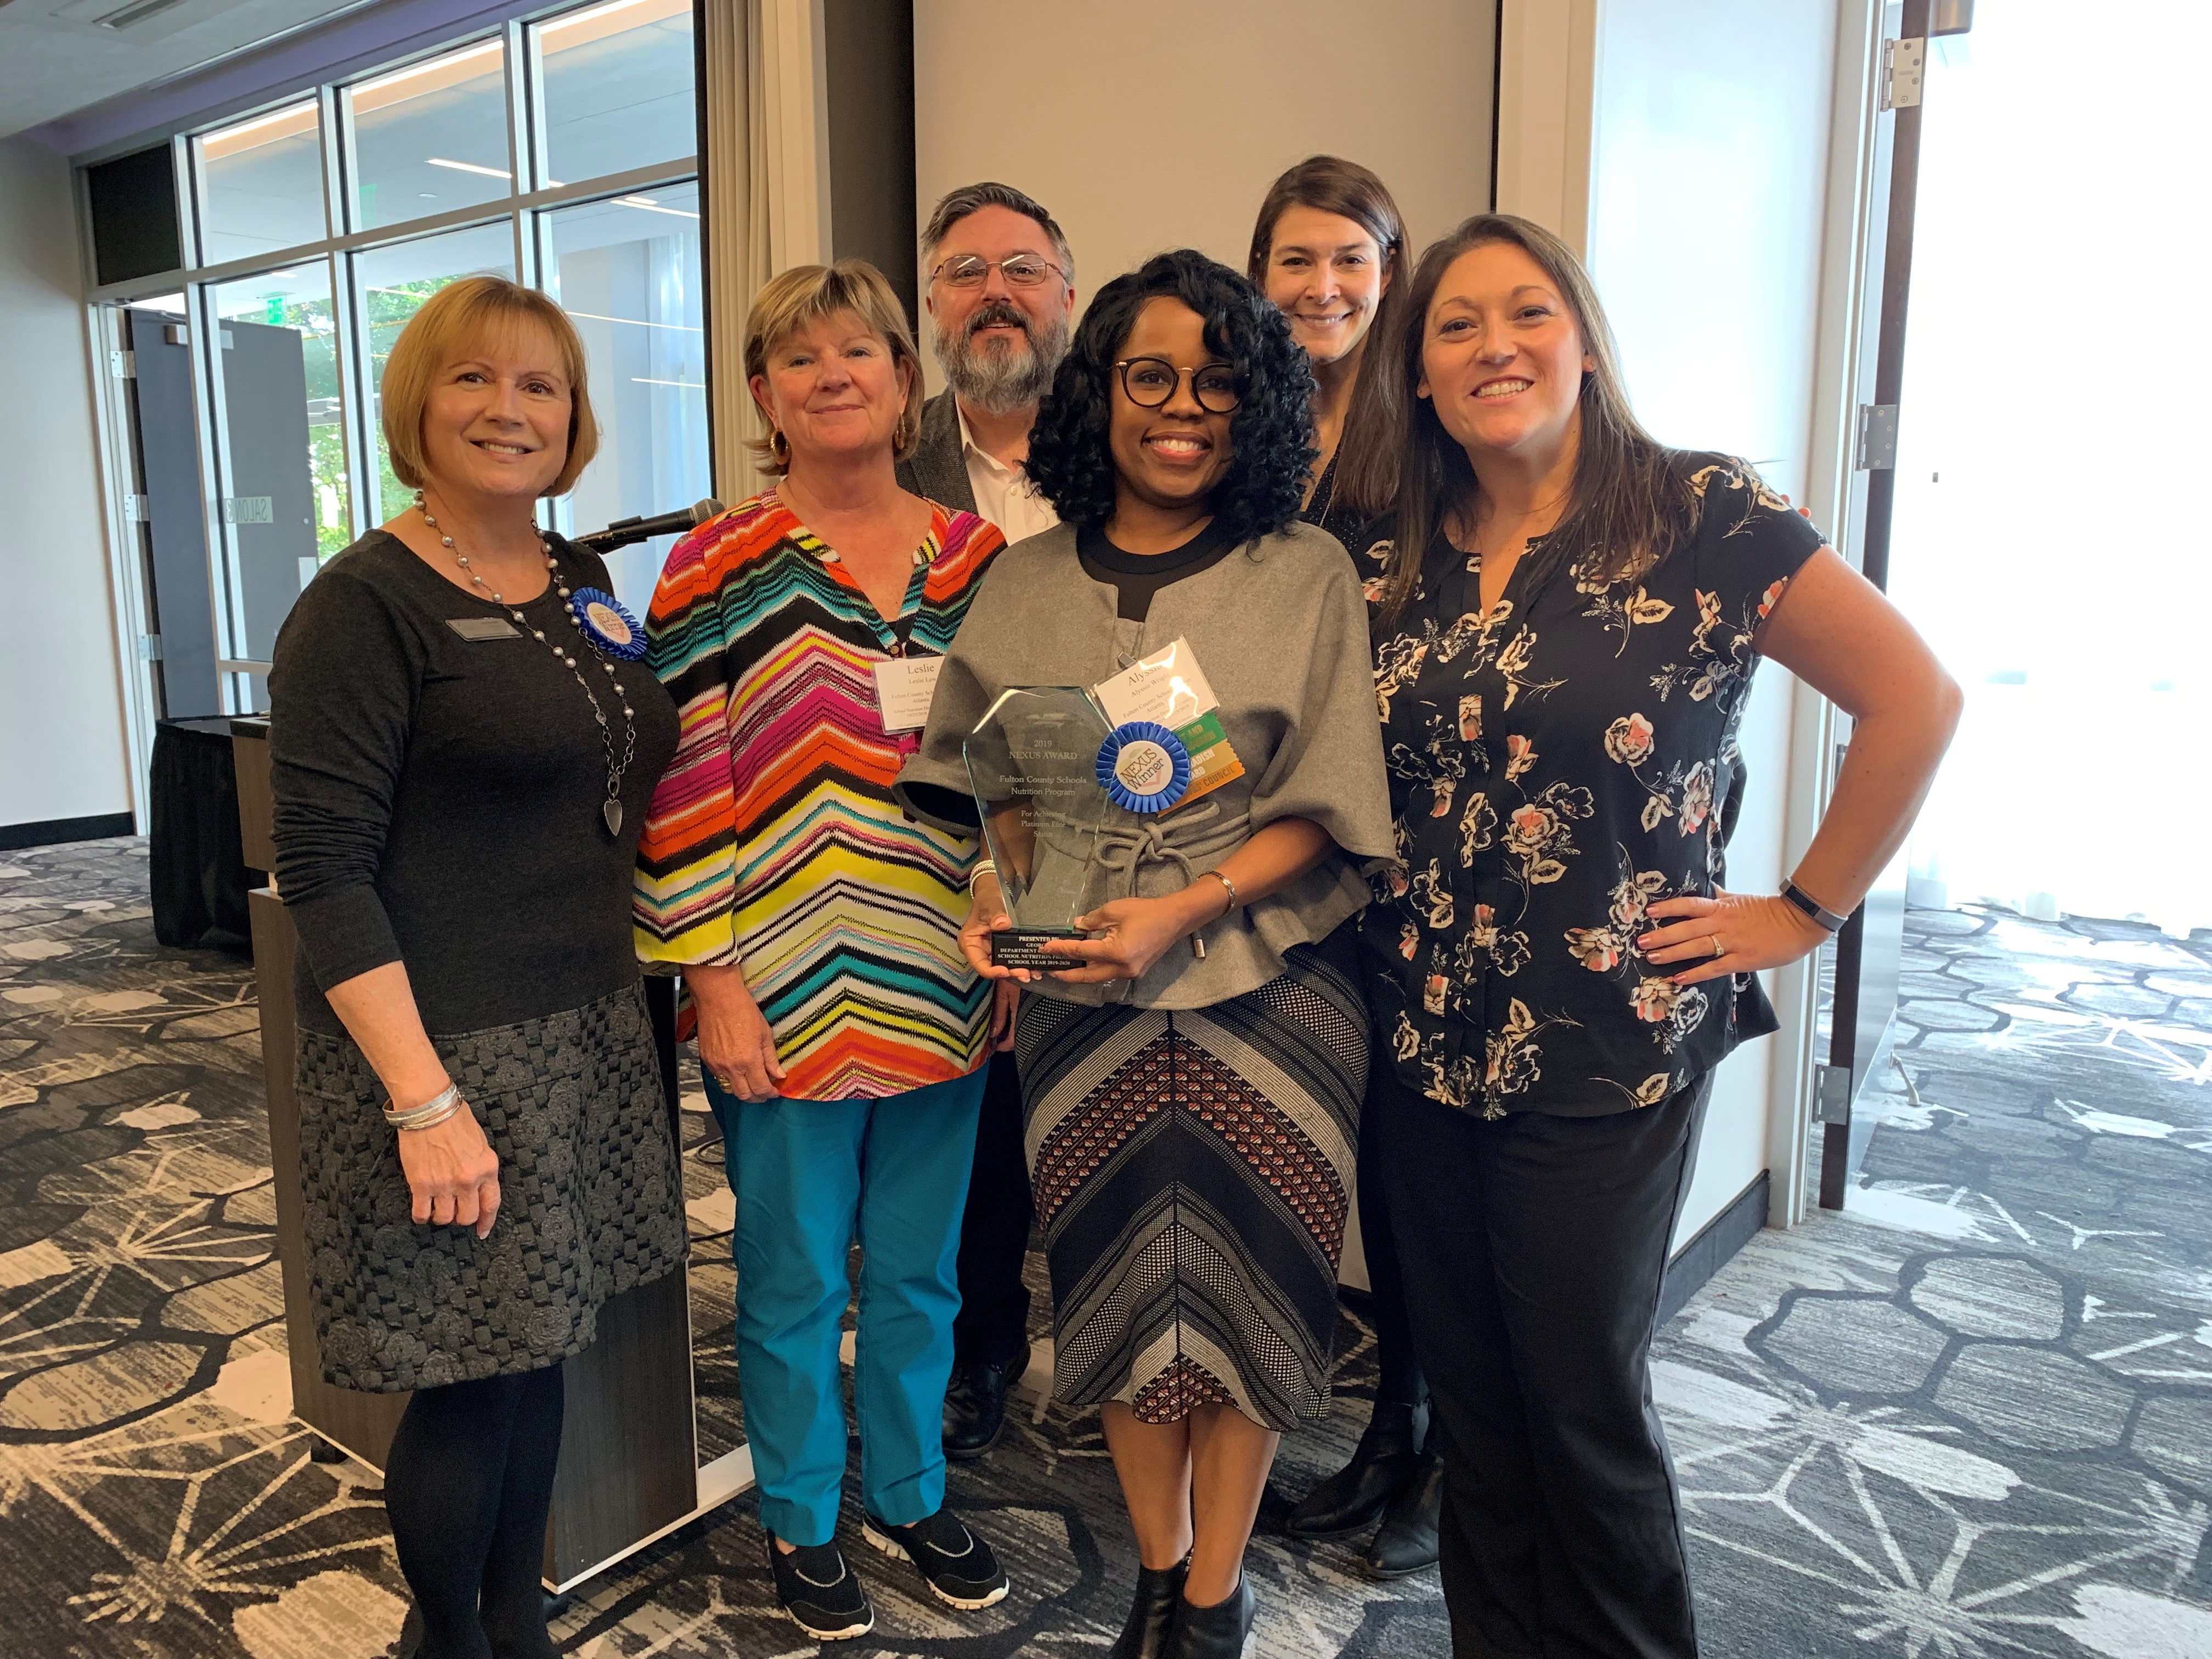 Fulton County School Nutrition 2019 Nexus Award, Super System by Georgia Department of Education School NutritionAssociation Wellness Award